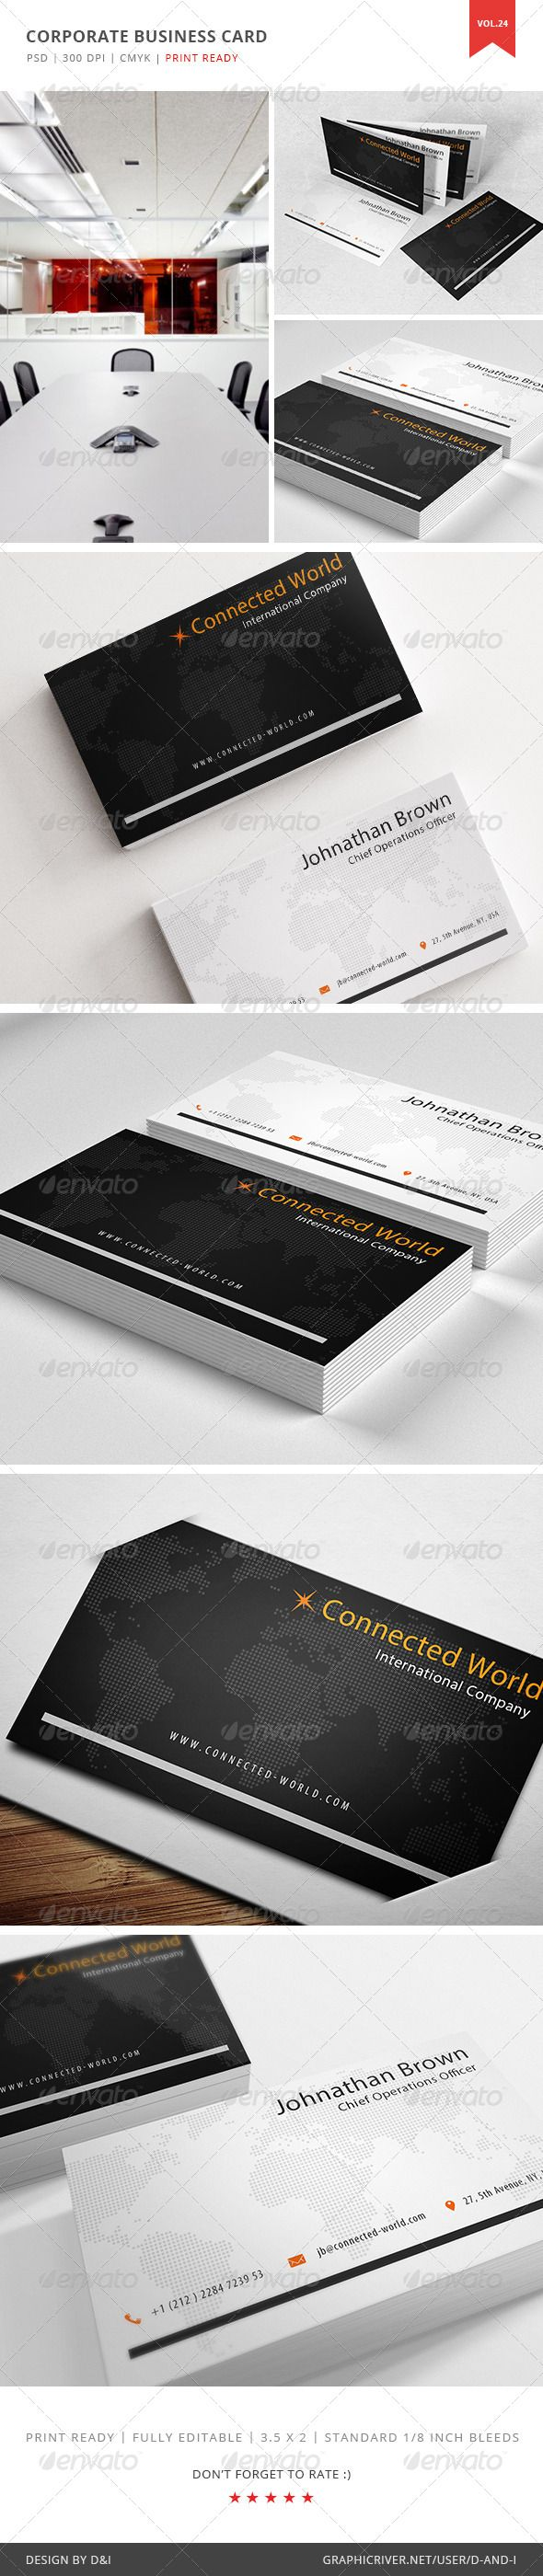 92 best Business Card Inspiration images on Pinterest | Business ...